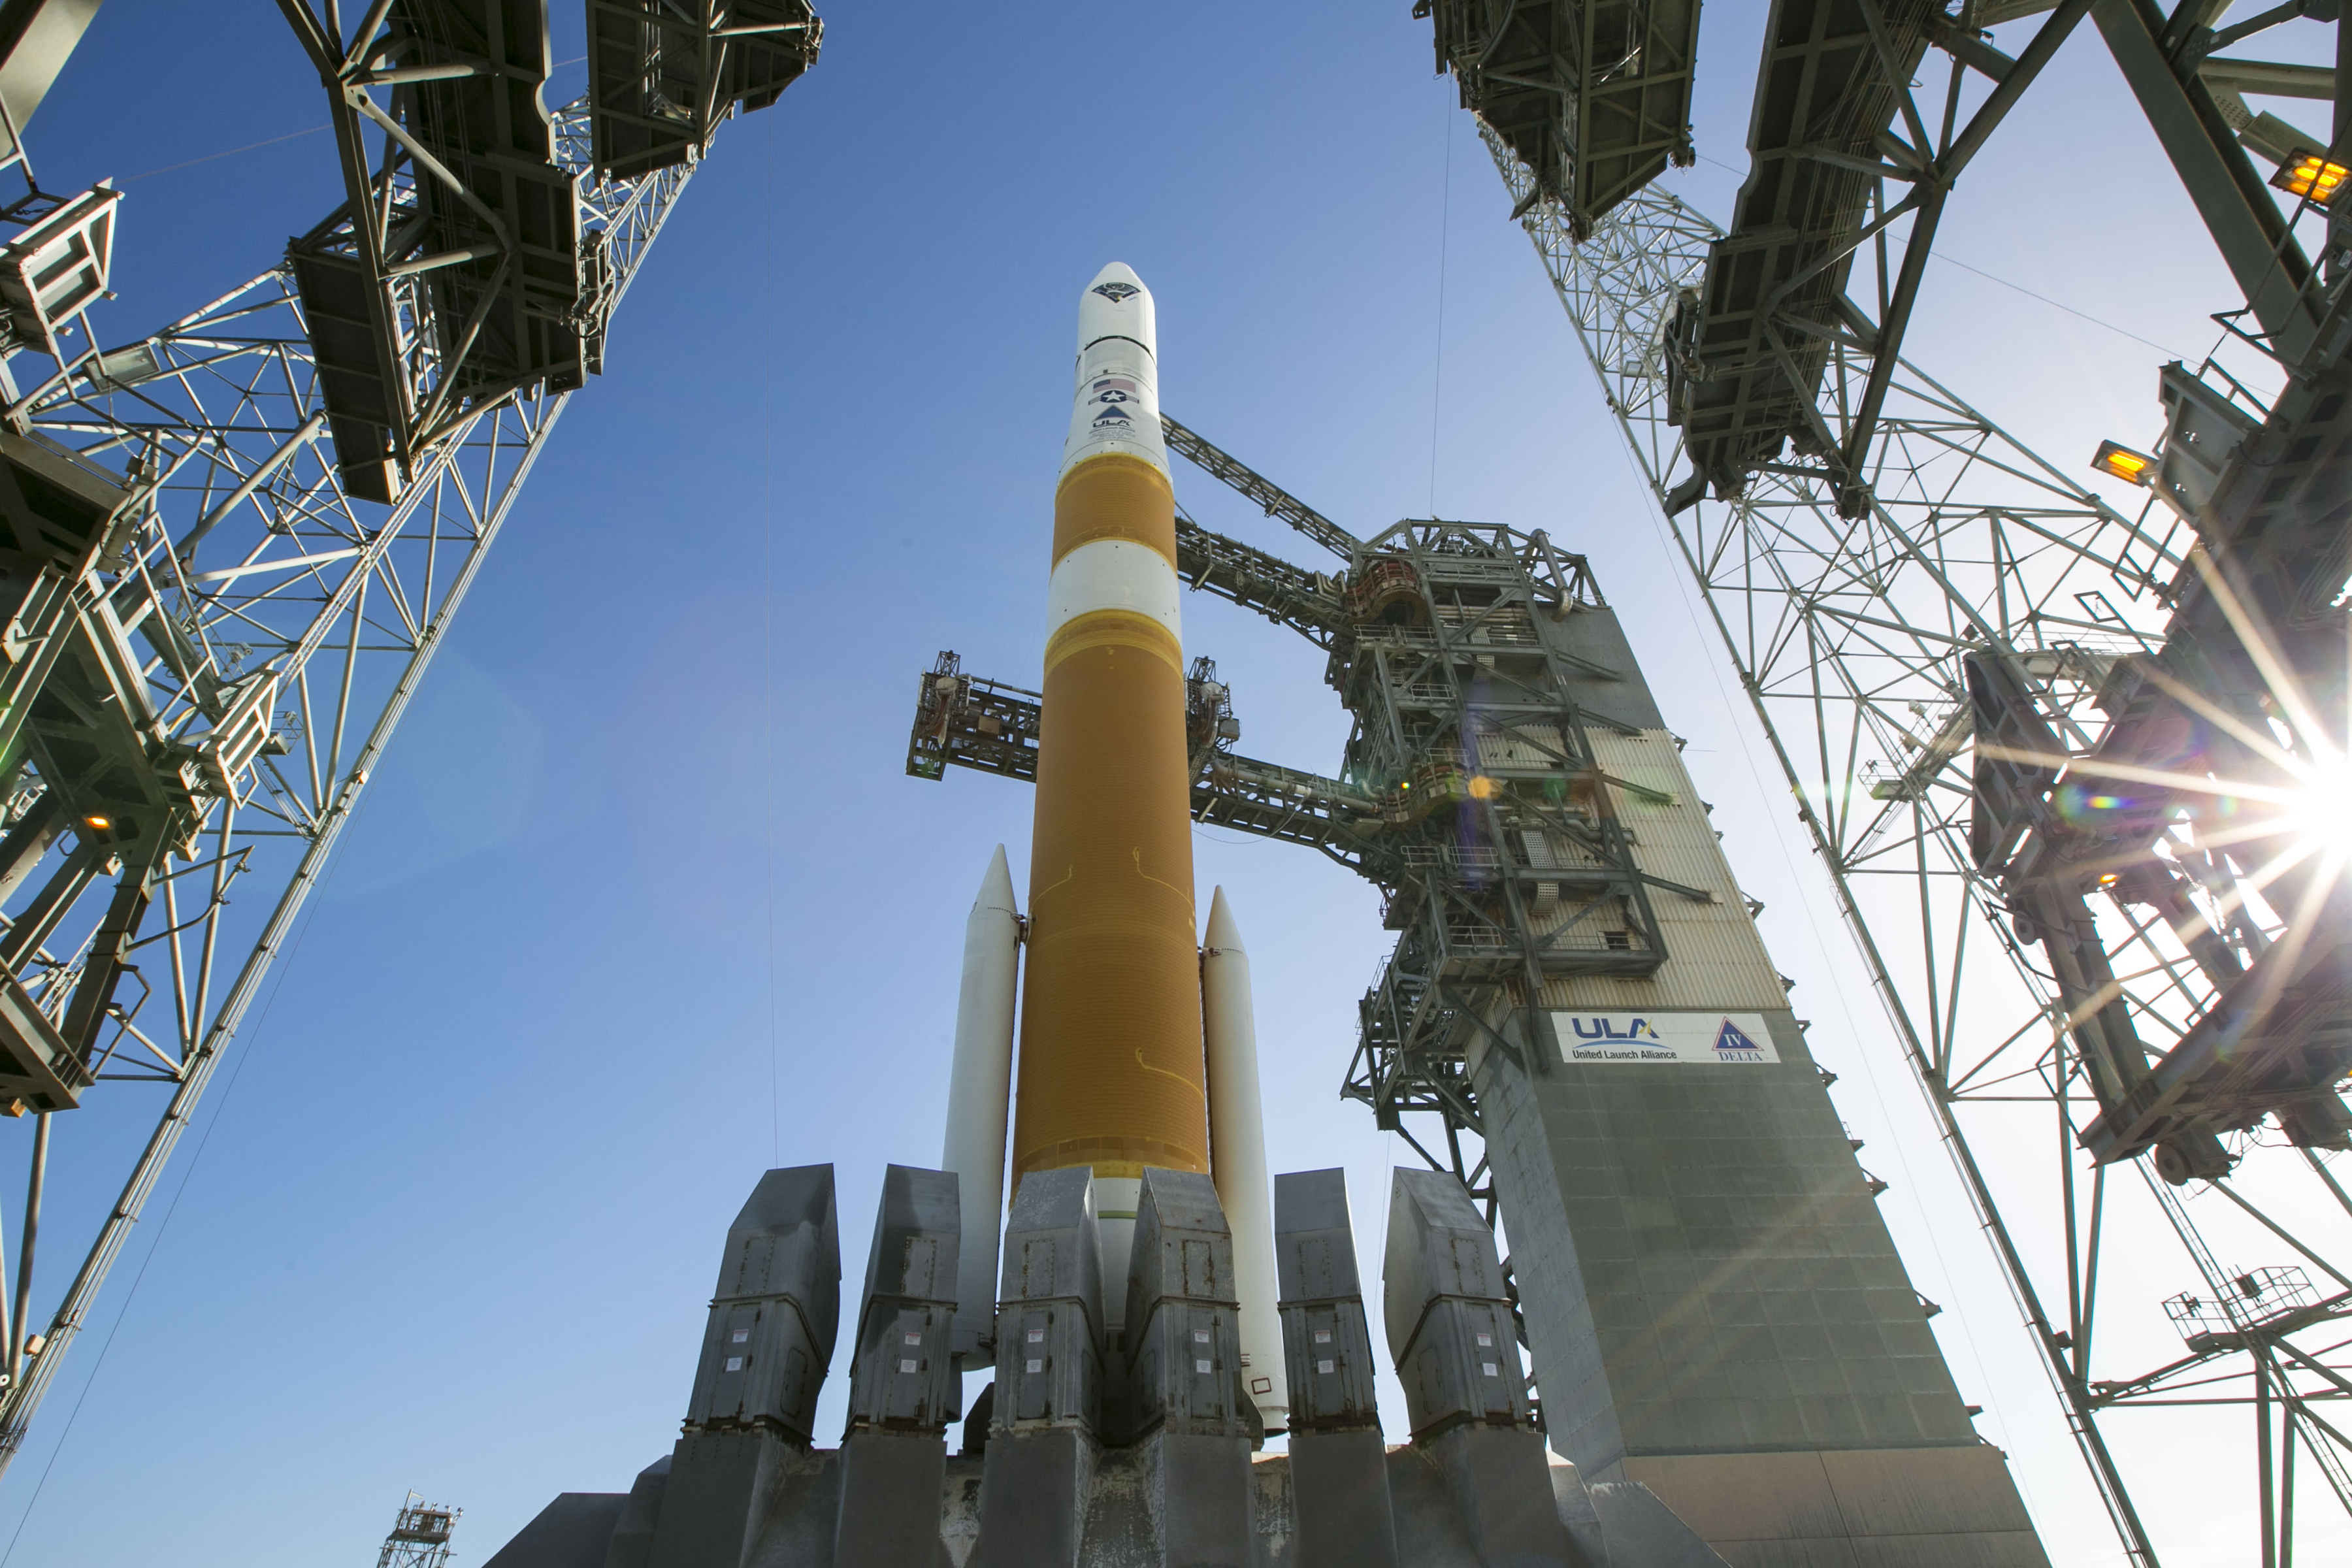 Midnight Hour Blastoff For Delta IV Rocket With Two